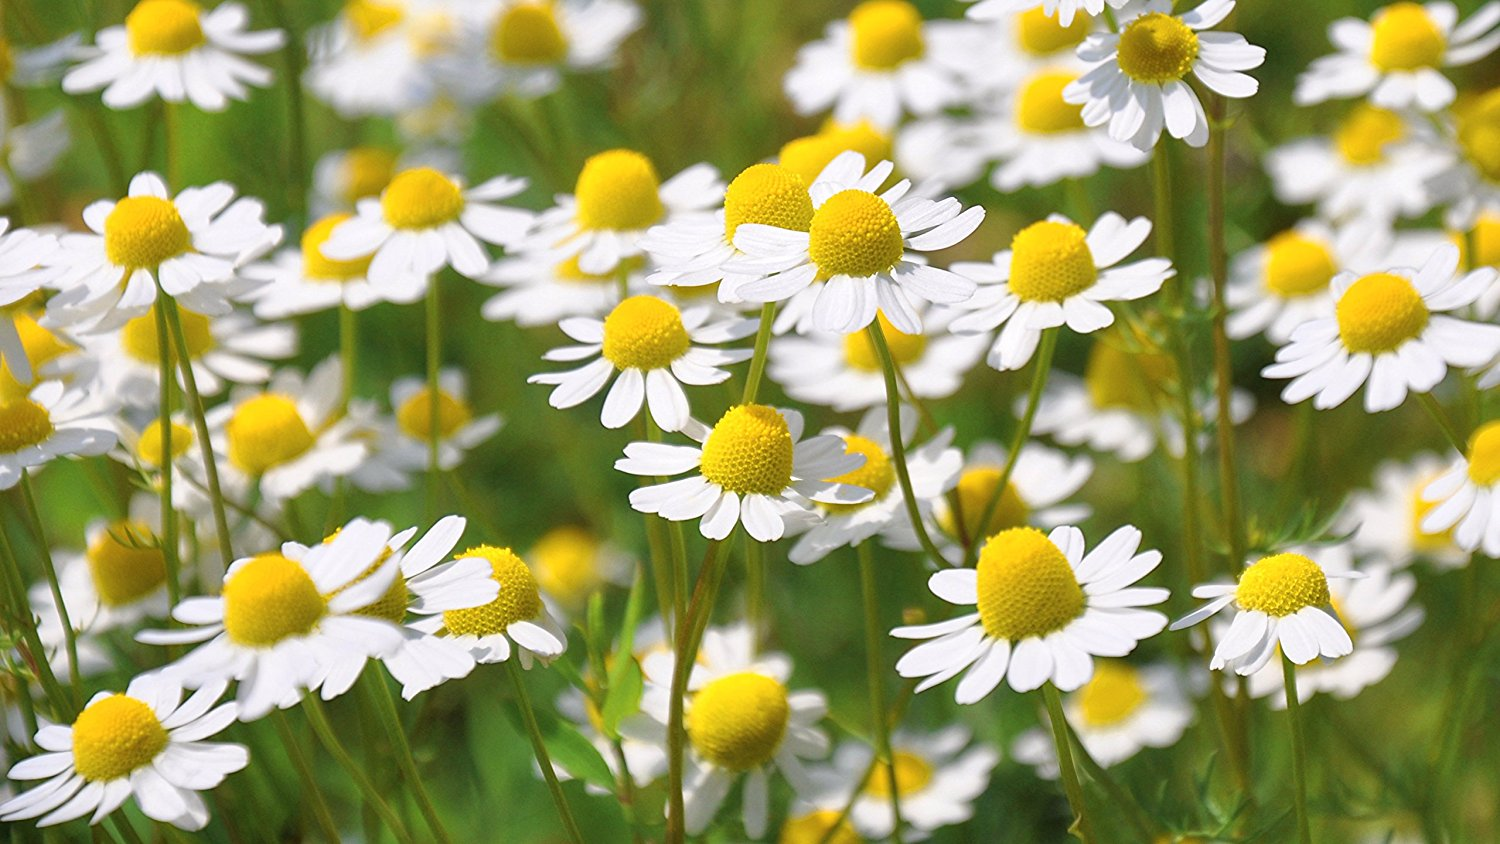 Chamomile Edible Flowers to Flavour your Food & Improve your Health (gardeningflavours.com)